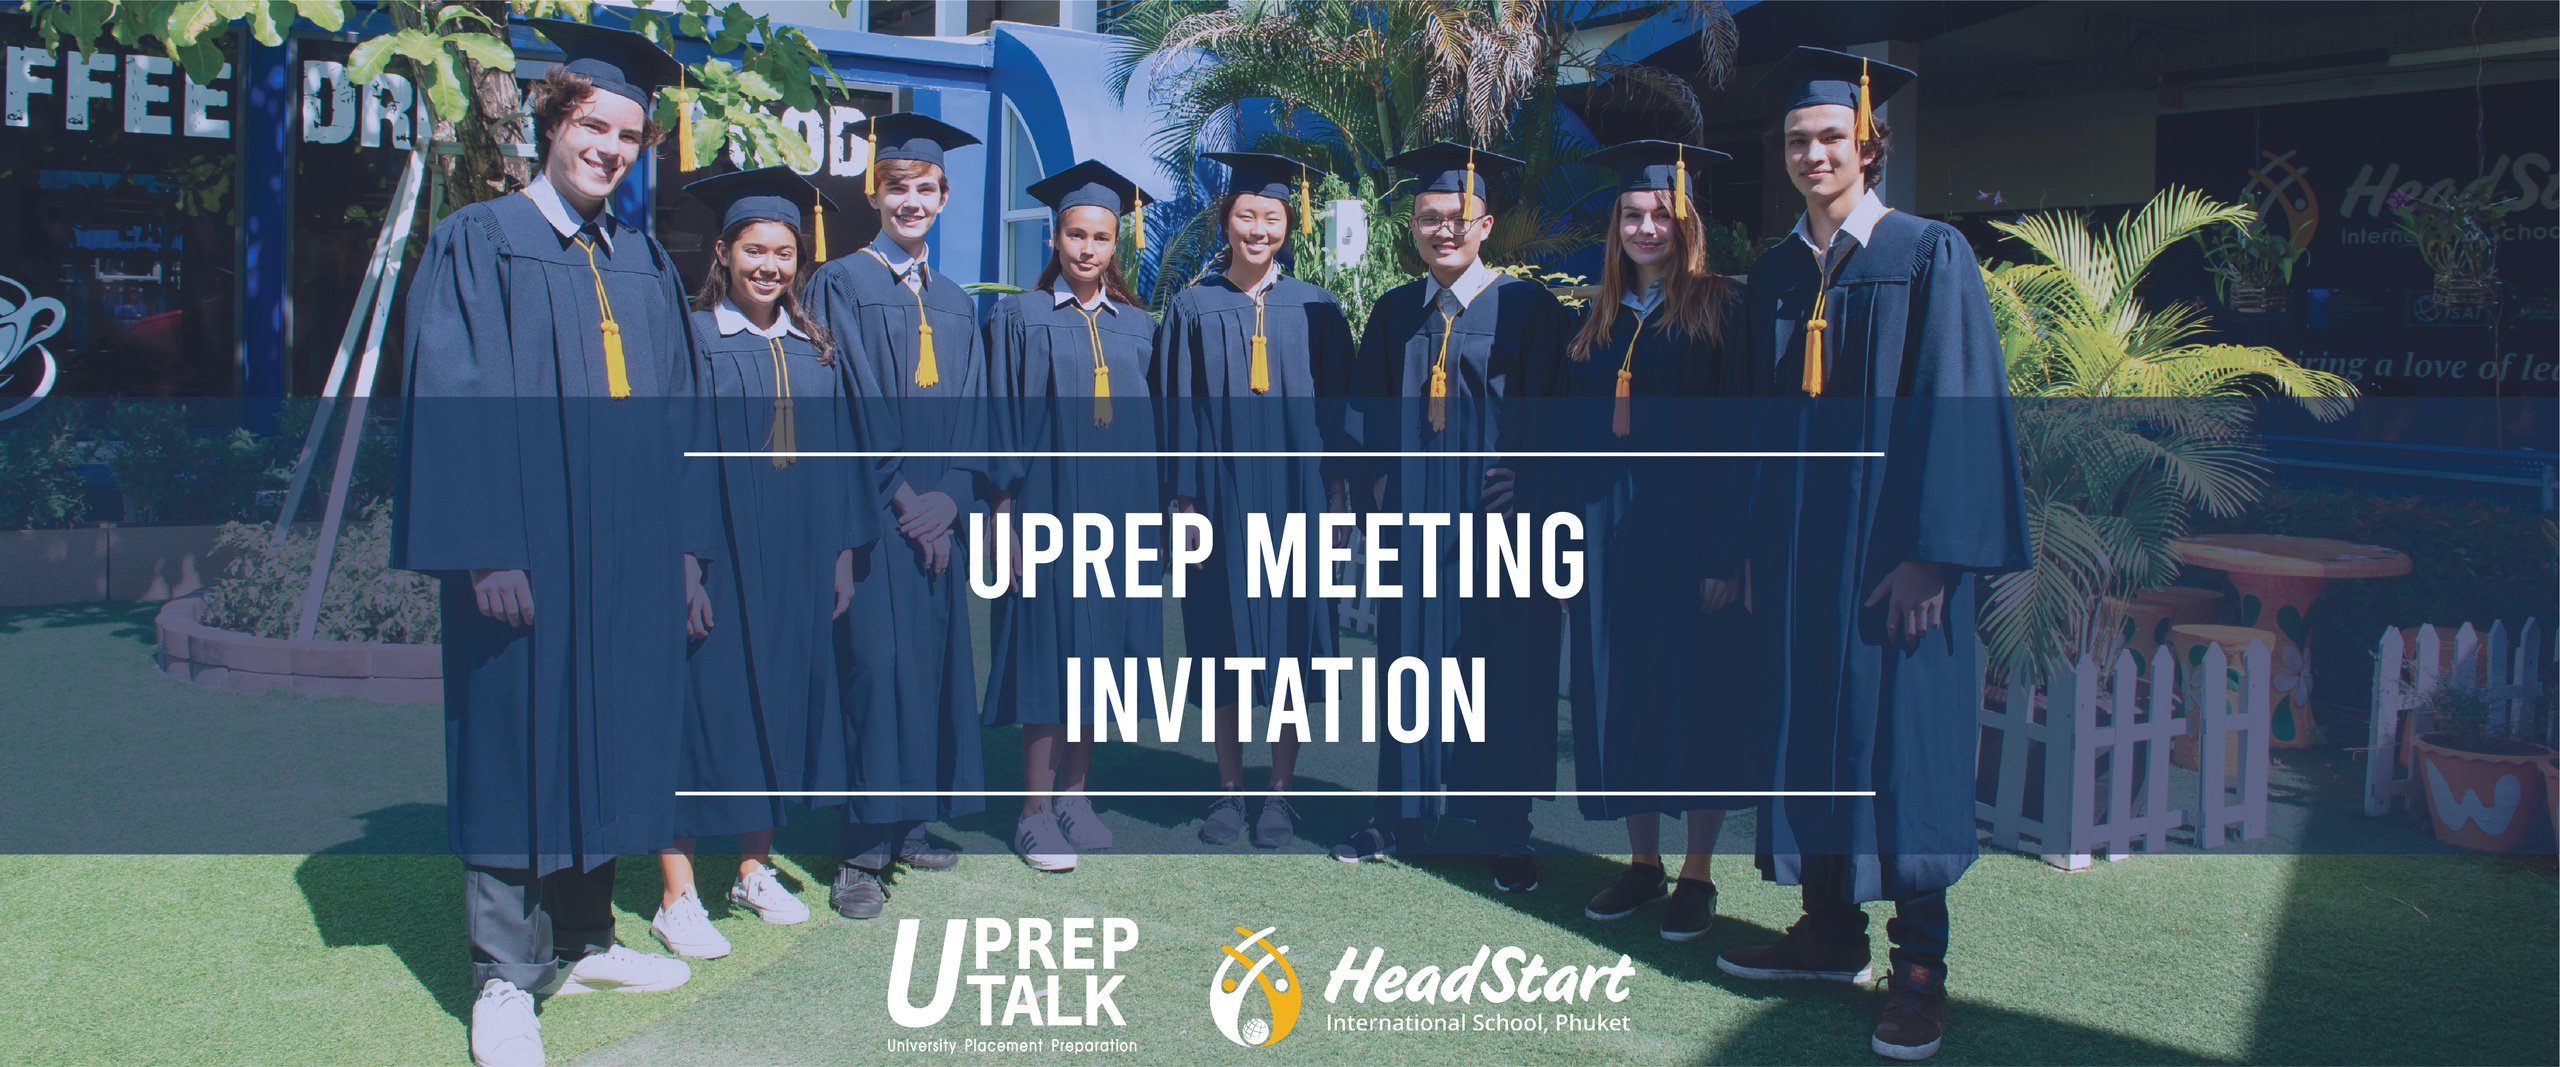 UPREP Meeting Invitation no date website